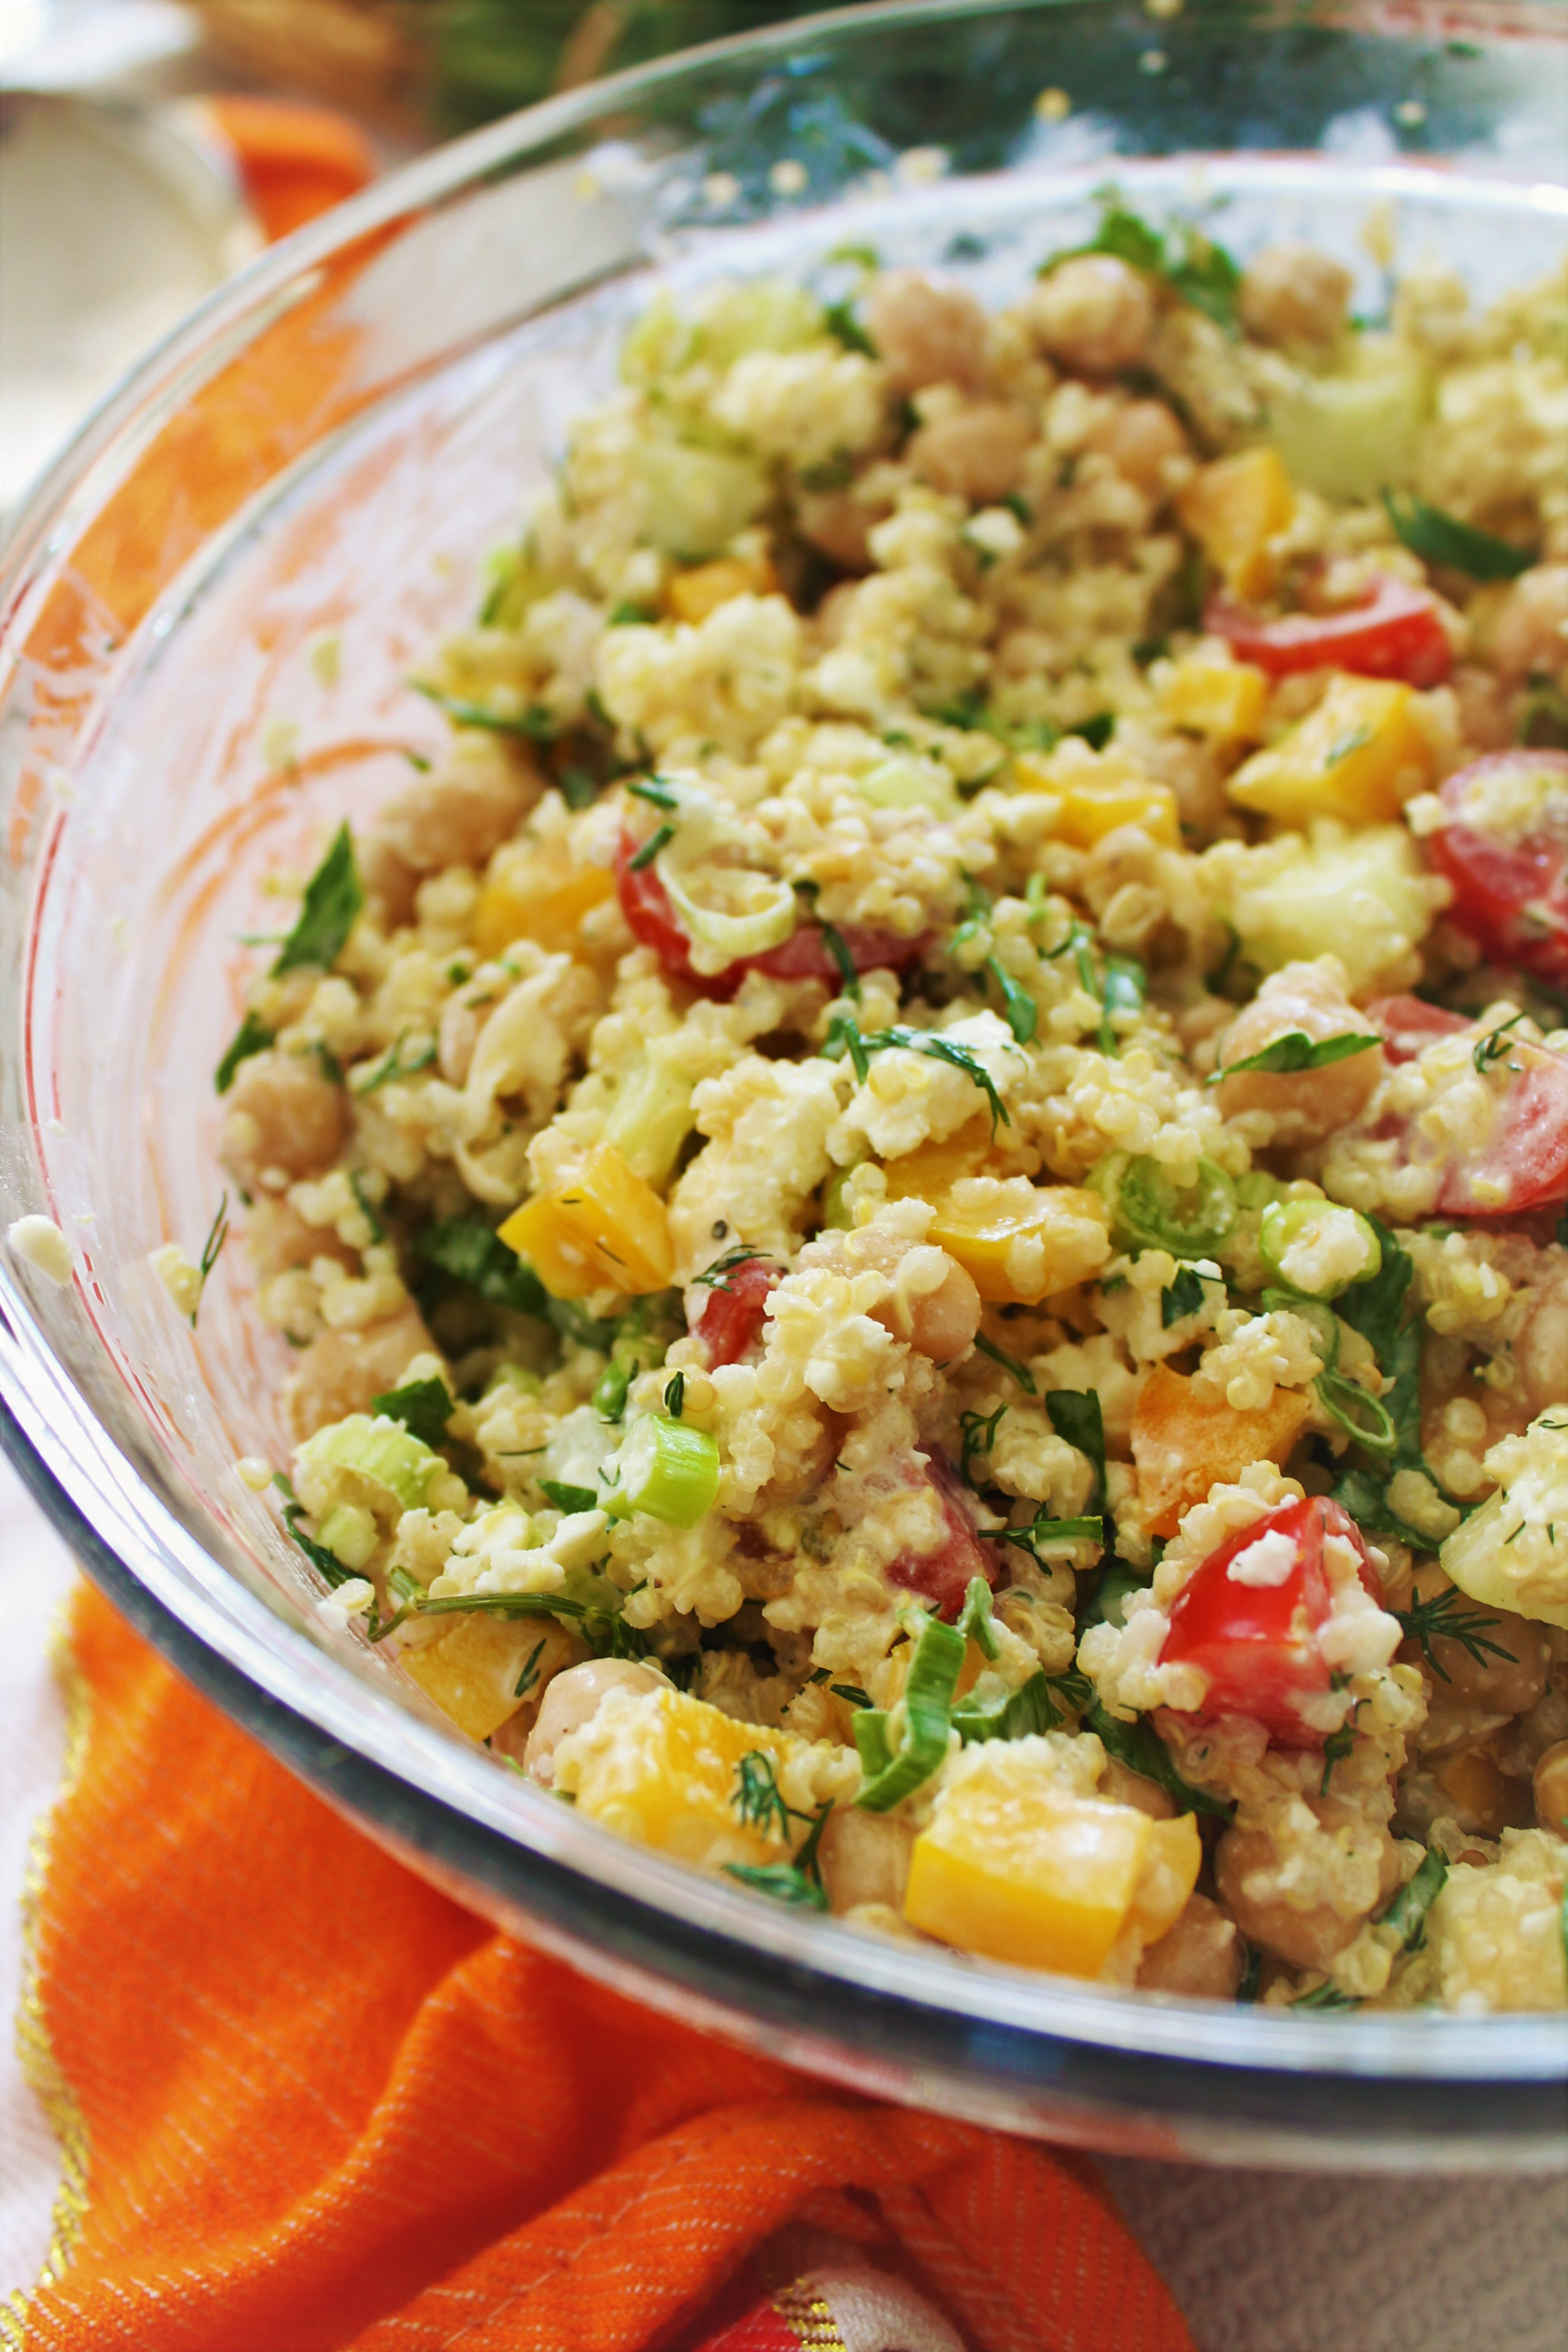 Summer Chickpea Quinoa Salad with Creamy Dill Dressing